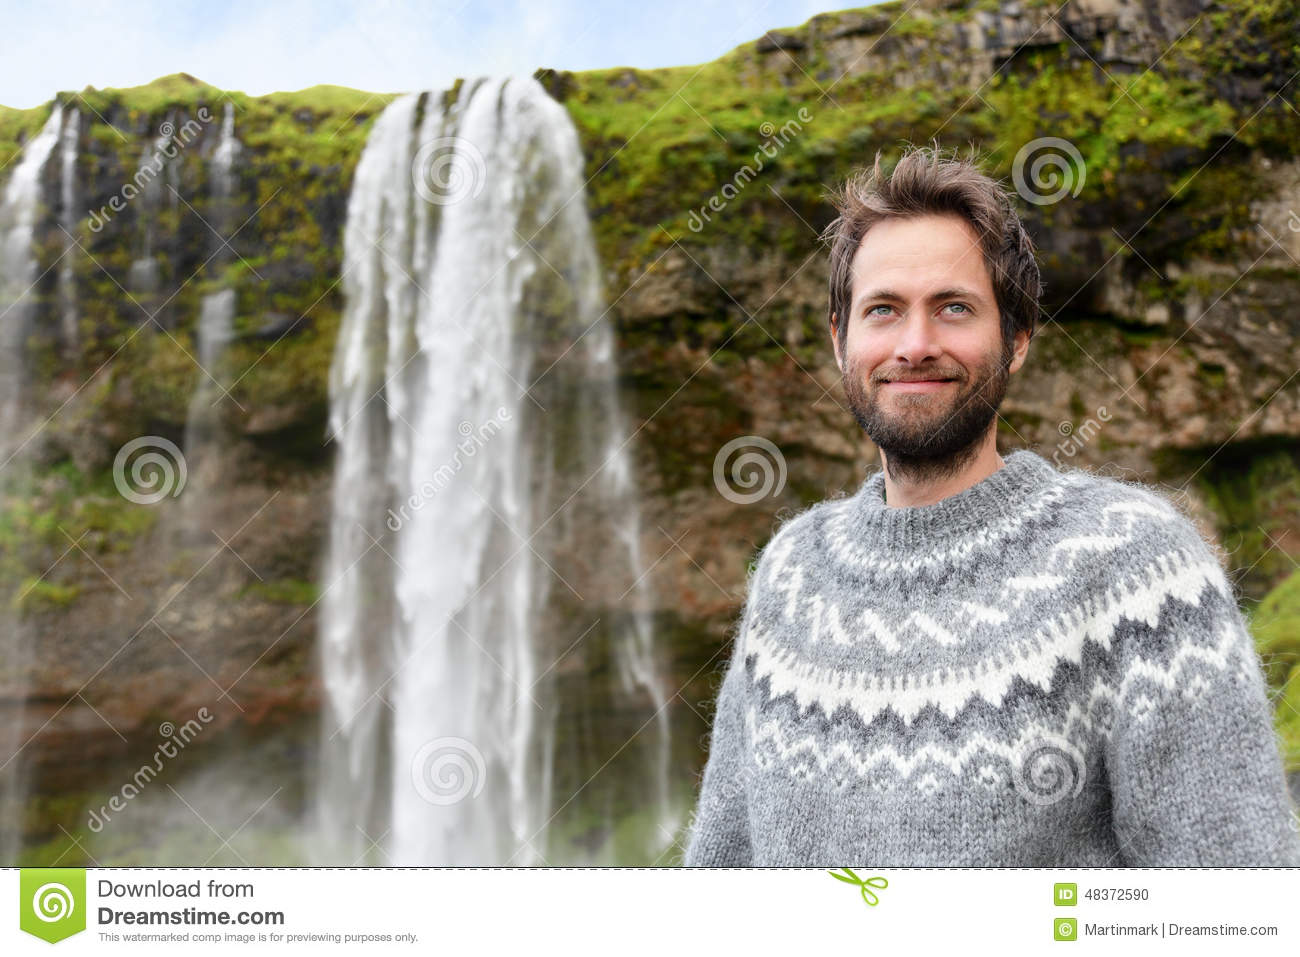 man in icelandic sweater by waterfall on iceland stock photo